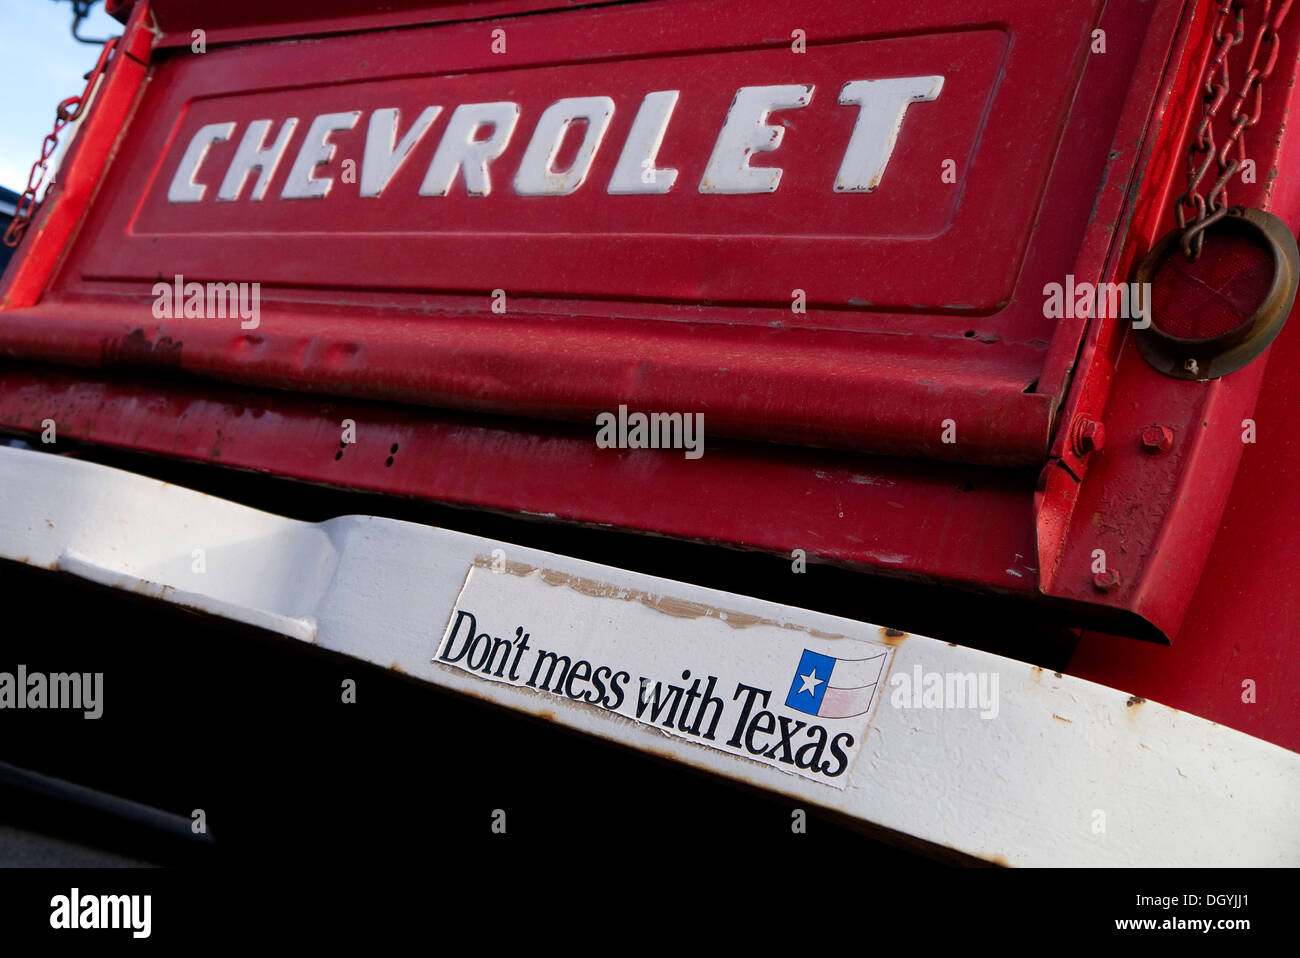 Classic Chevrolet pickup truck with 'Dont Mess with Texas' bumper sticker in Amarillo Texas USA - Stock Image